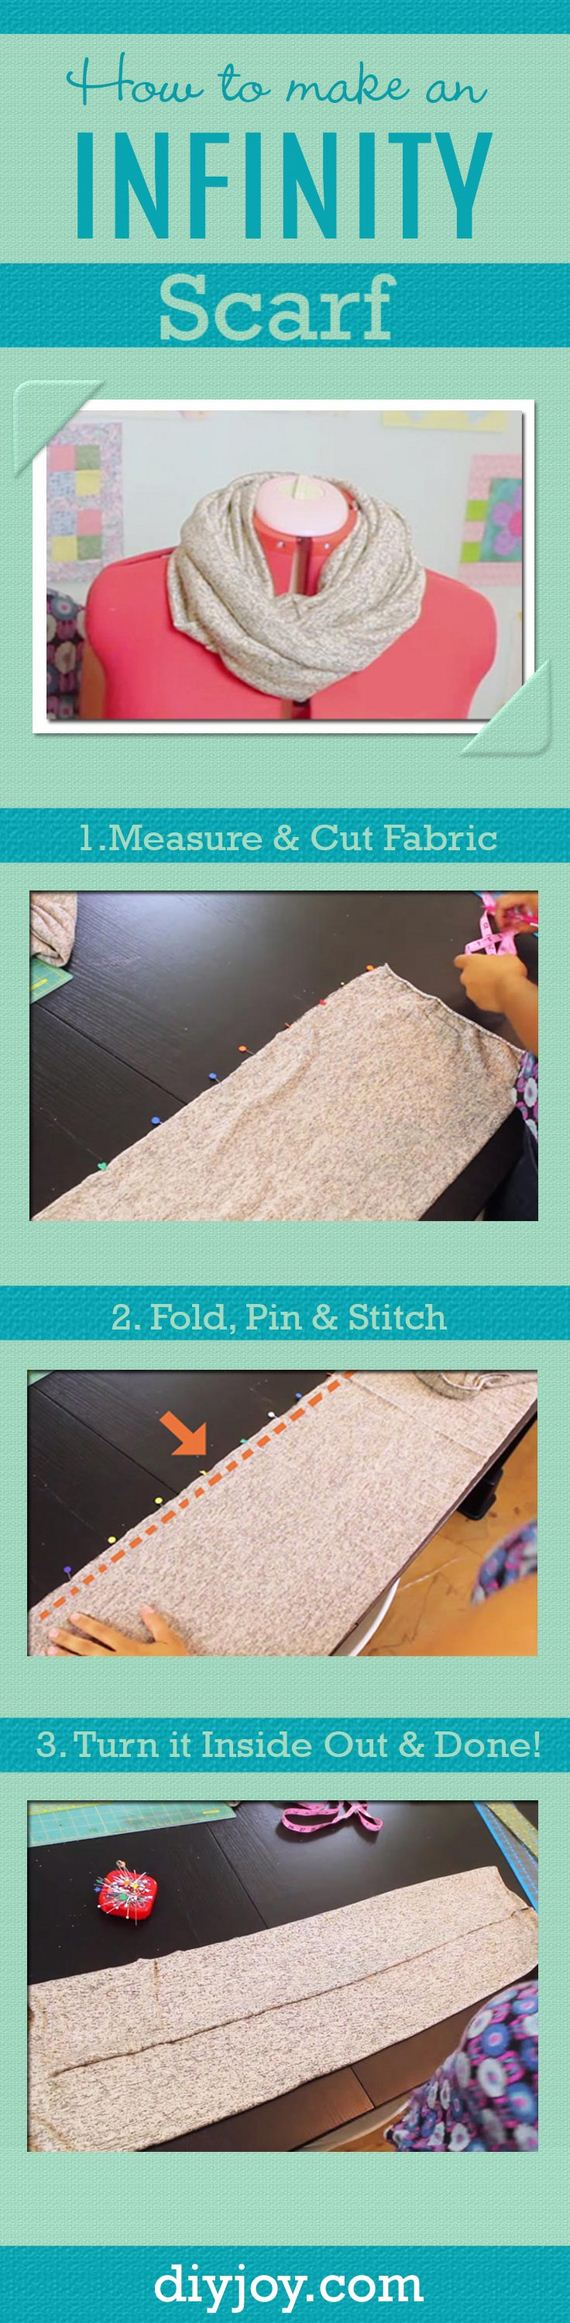 15-sewing-gifts-featured-image